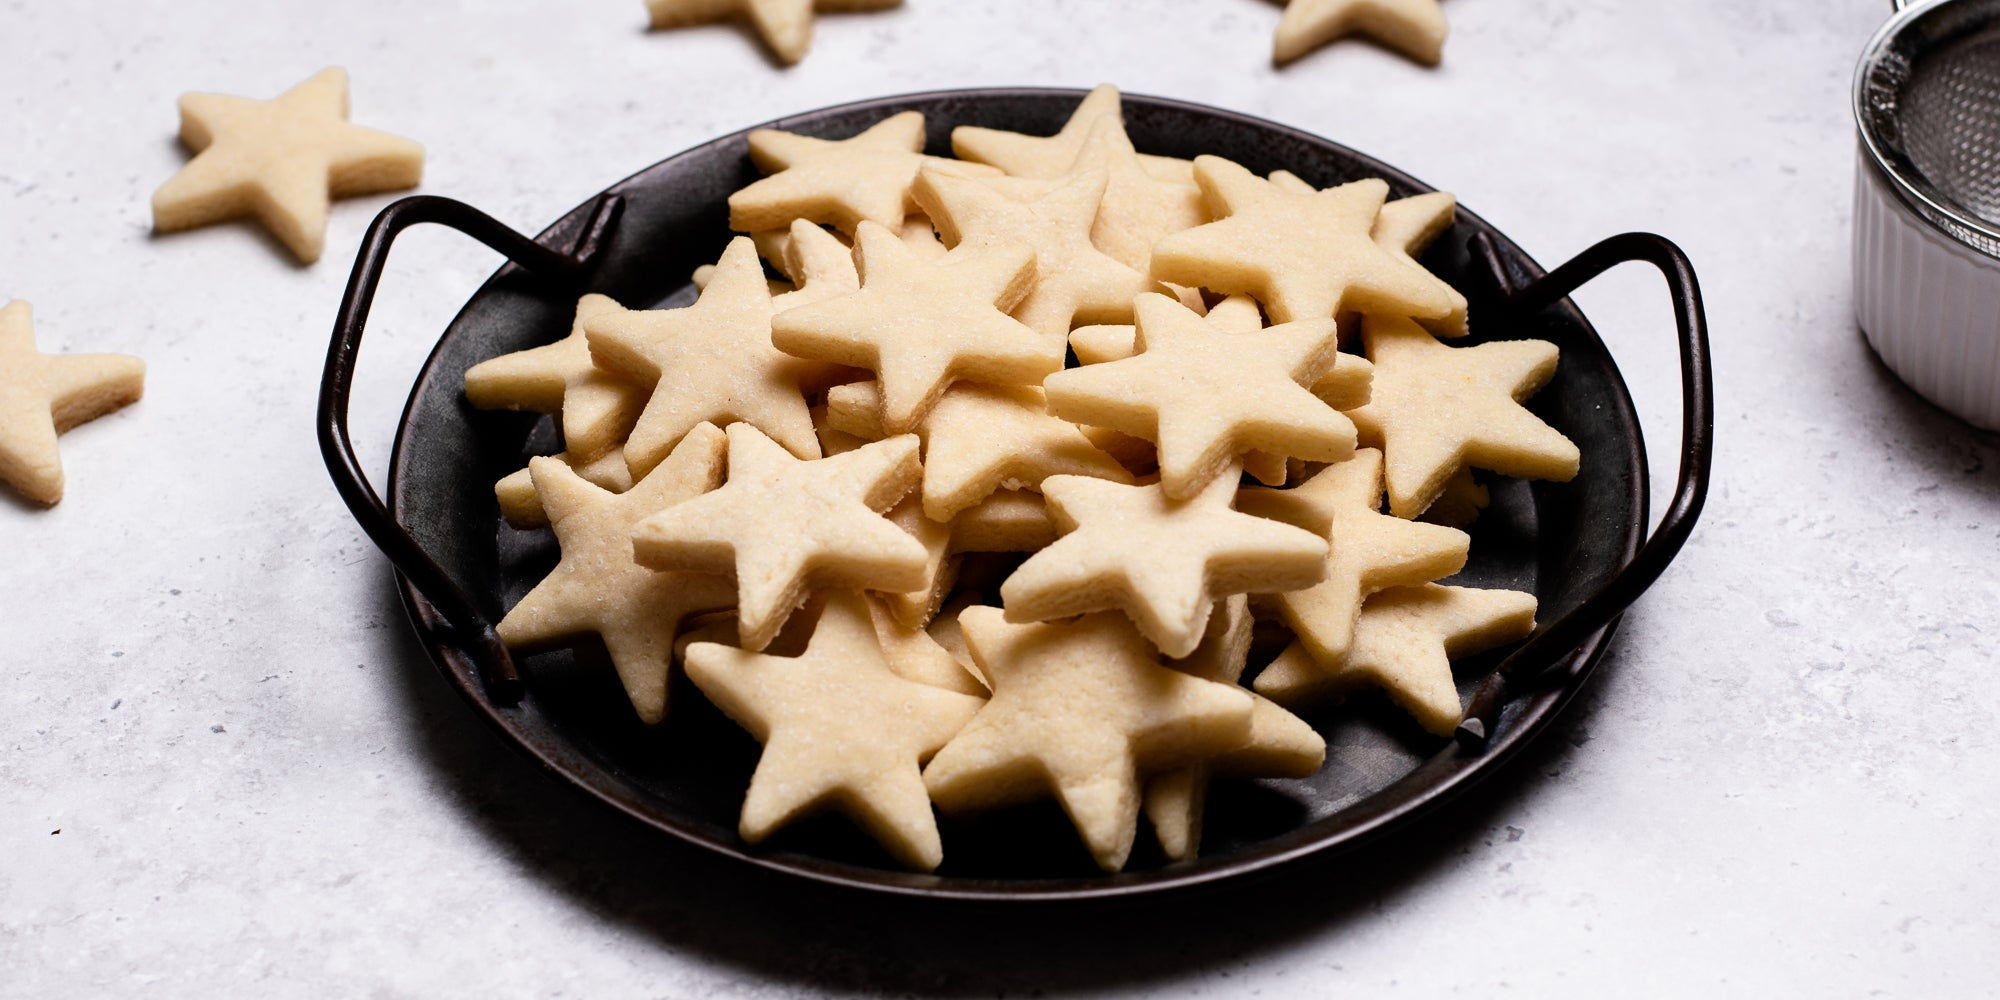 A side on view of star shaped vegan biscuits in a bowl